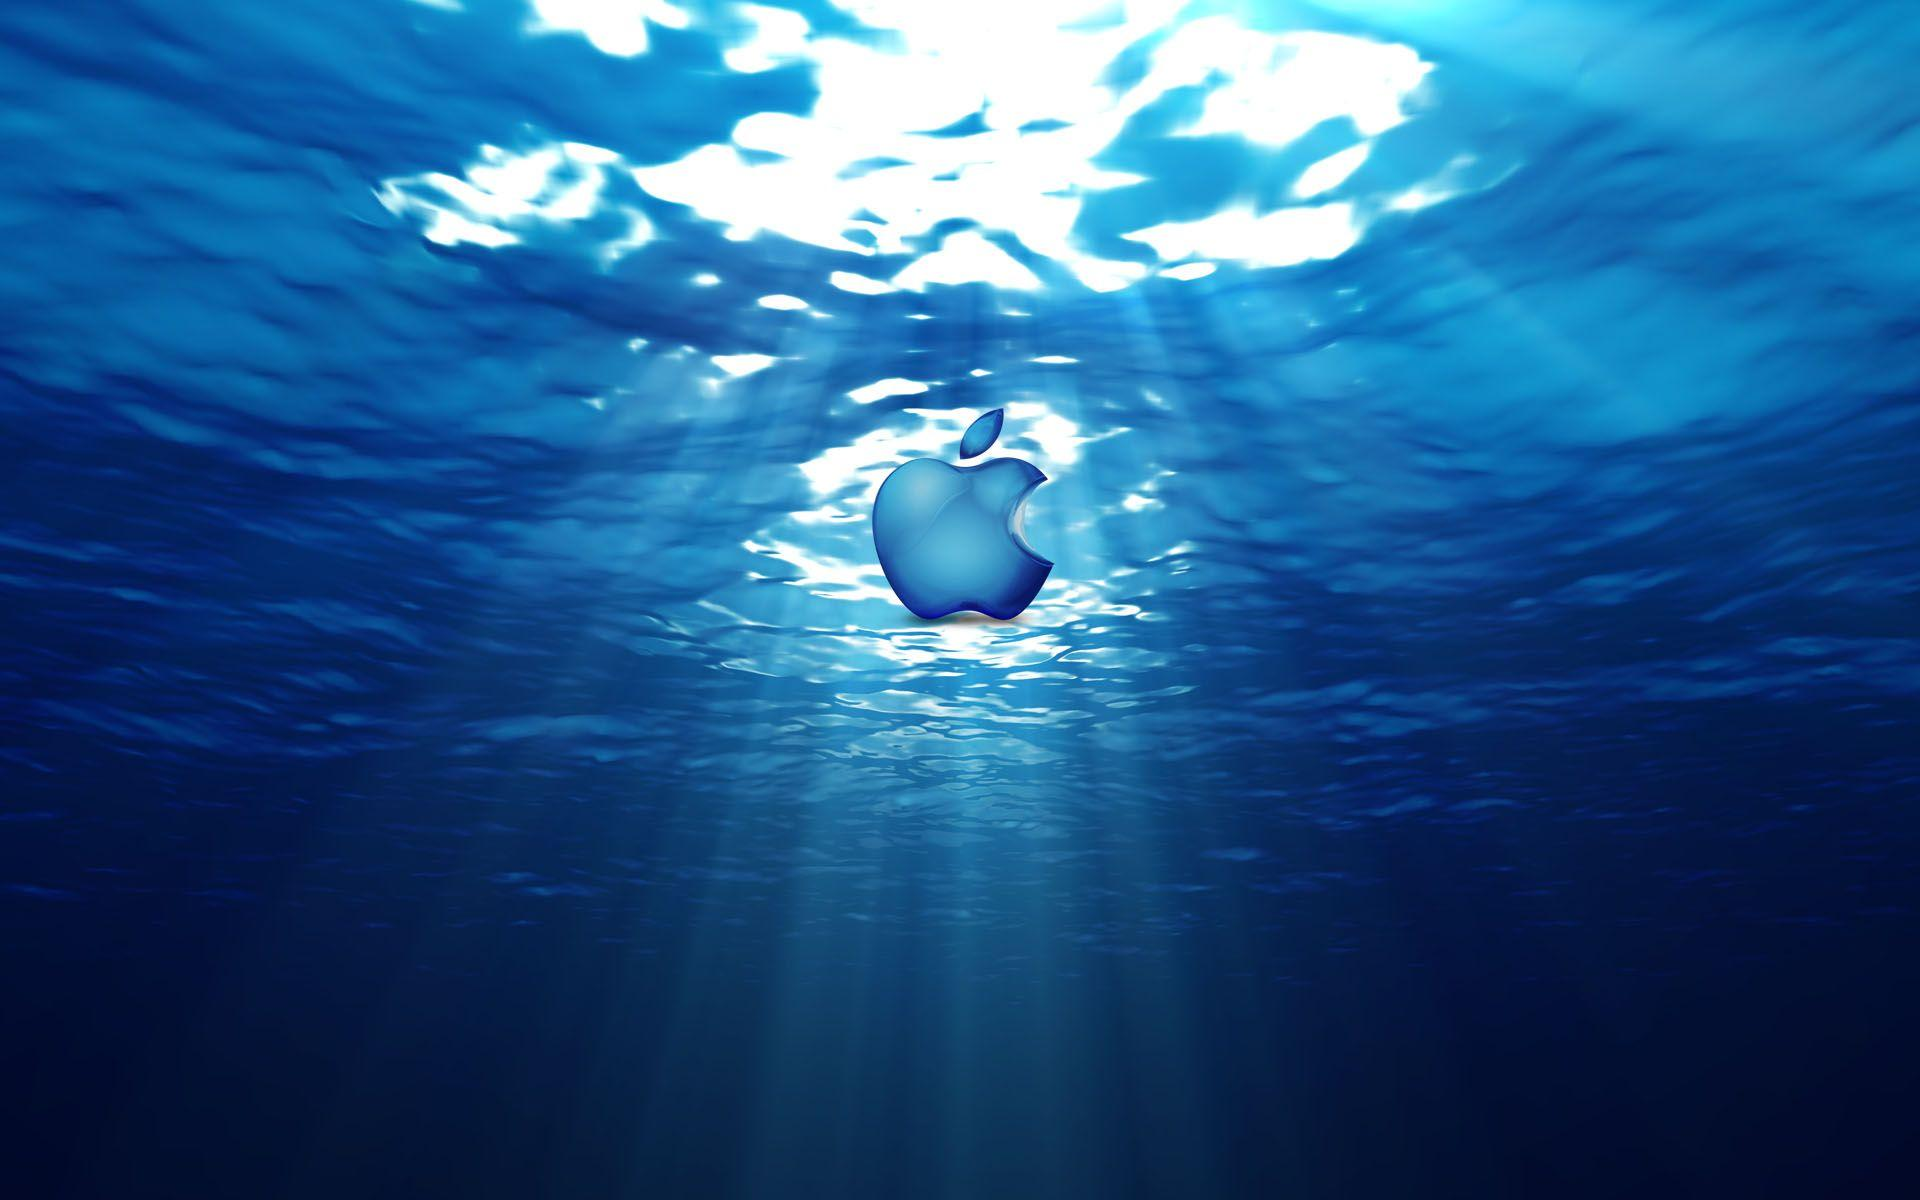 Apple Desktop Wallpapers HD  Wallpaper Cave